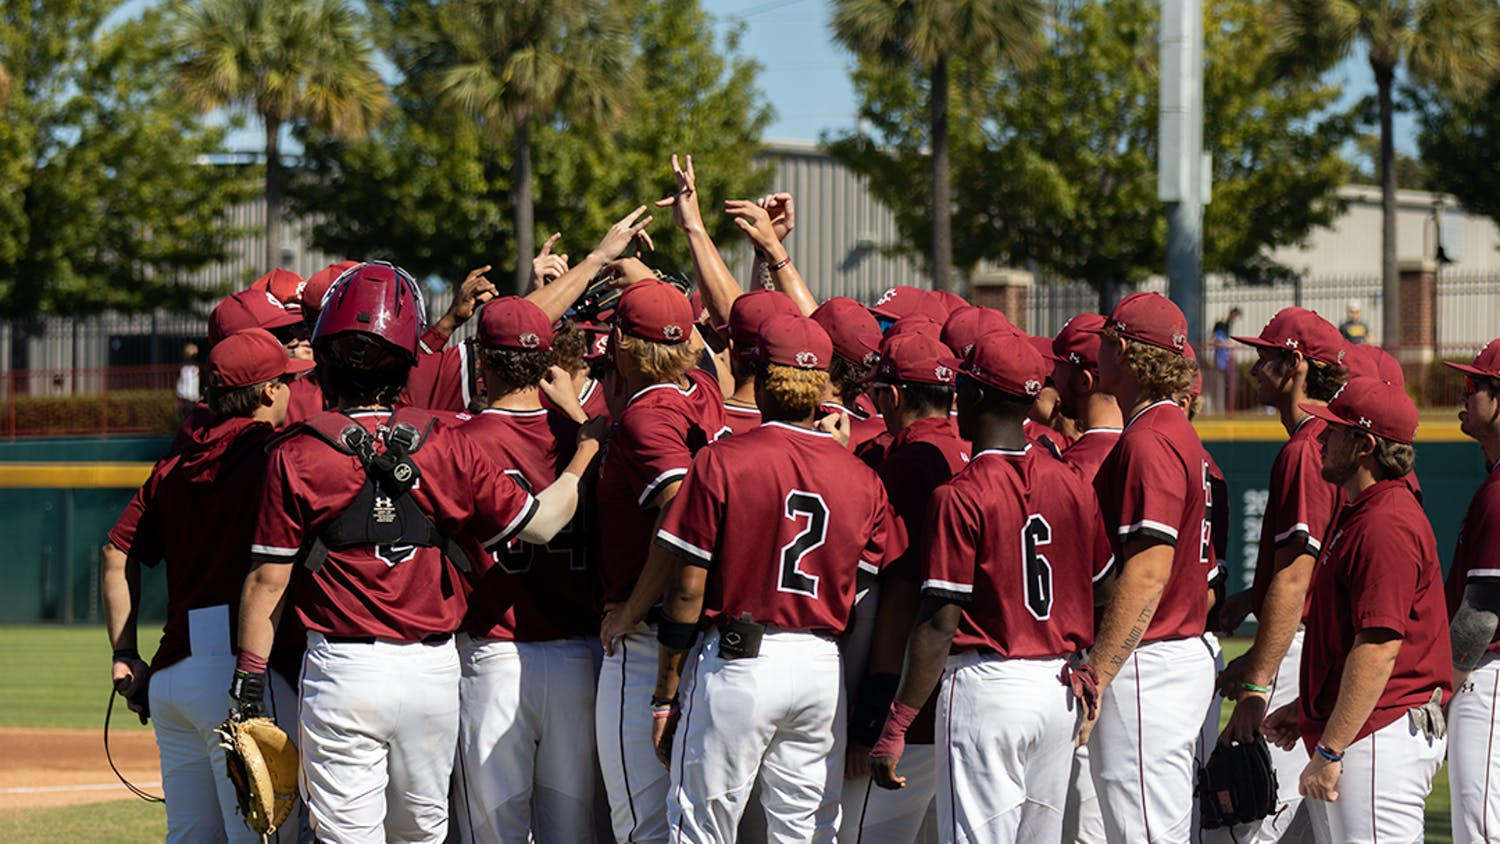 The Gamecocks group up before the first scrimmage against UNCW on Oct. 23, 2021. The Gamecocks tied the first scrimmage 7-7, and then won 8-4 in the second.